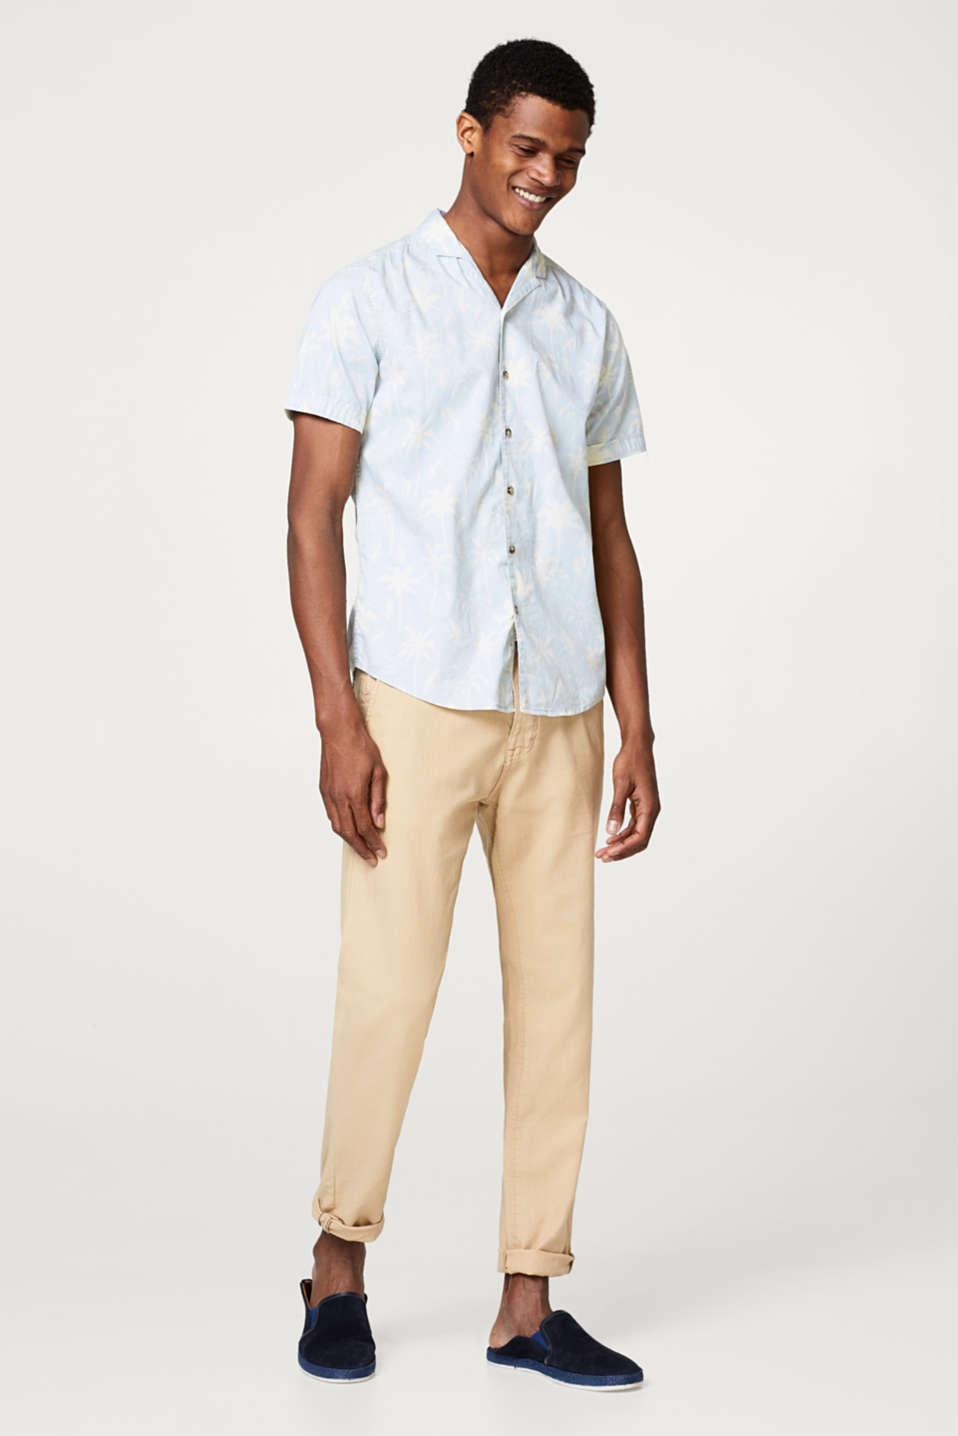 Loose trousers with braided belt, in blended linen